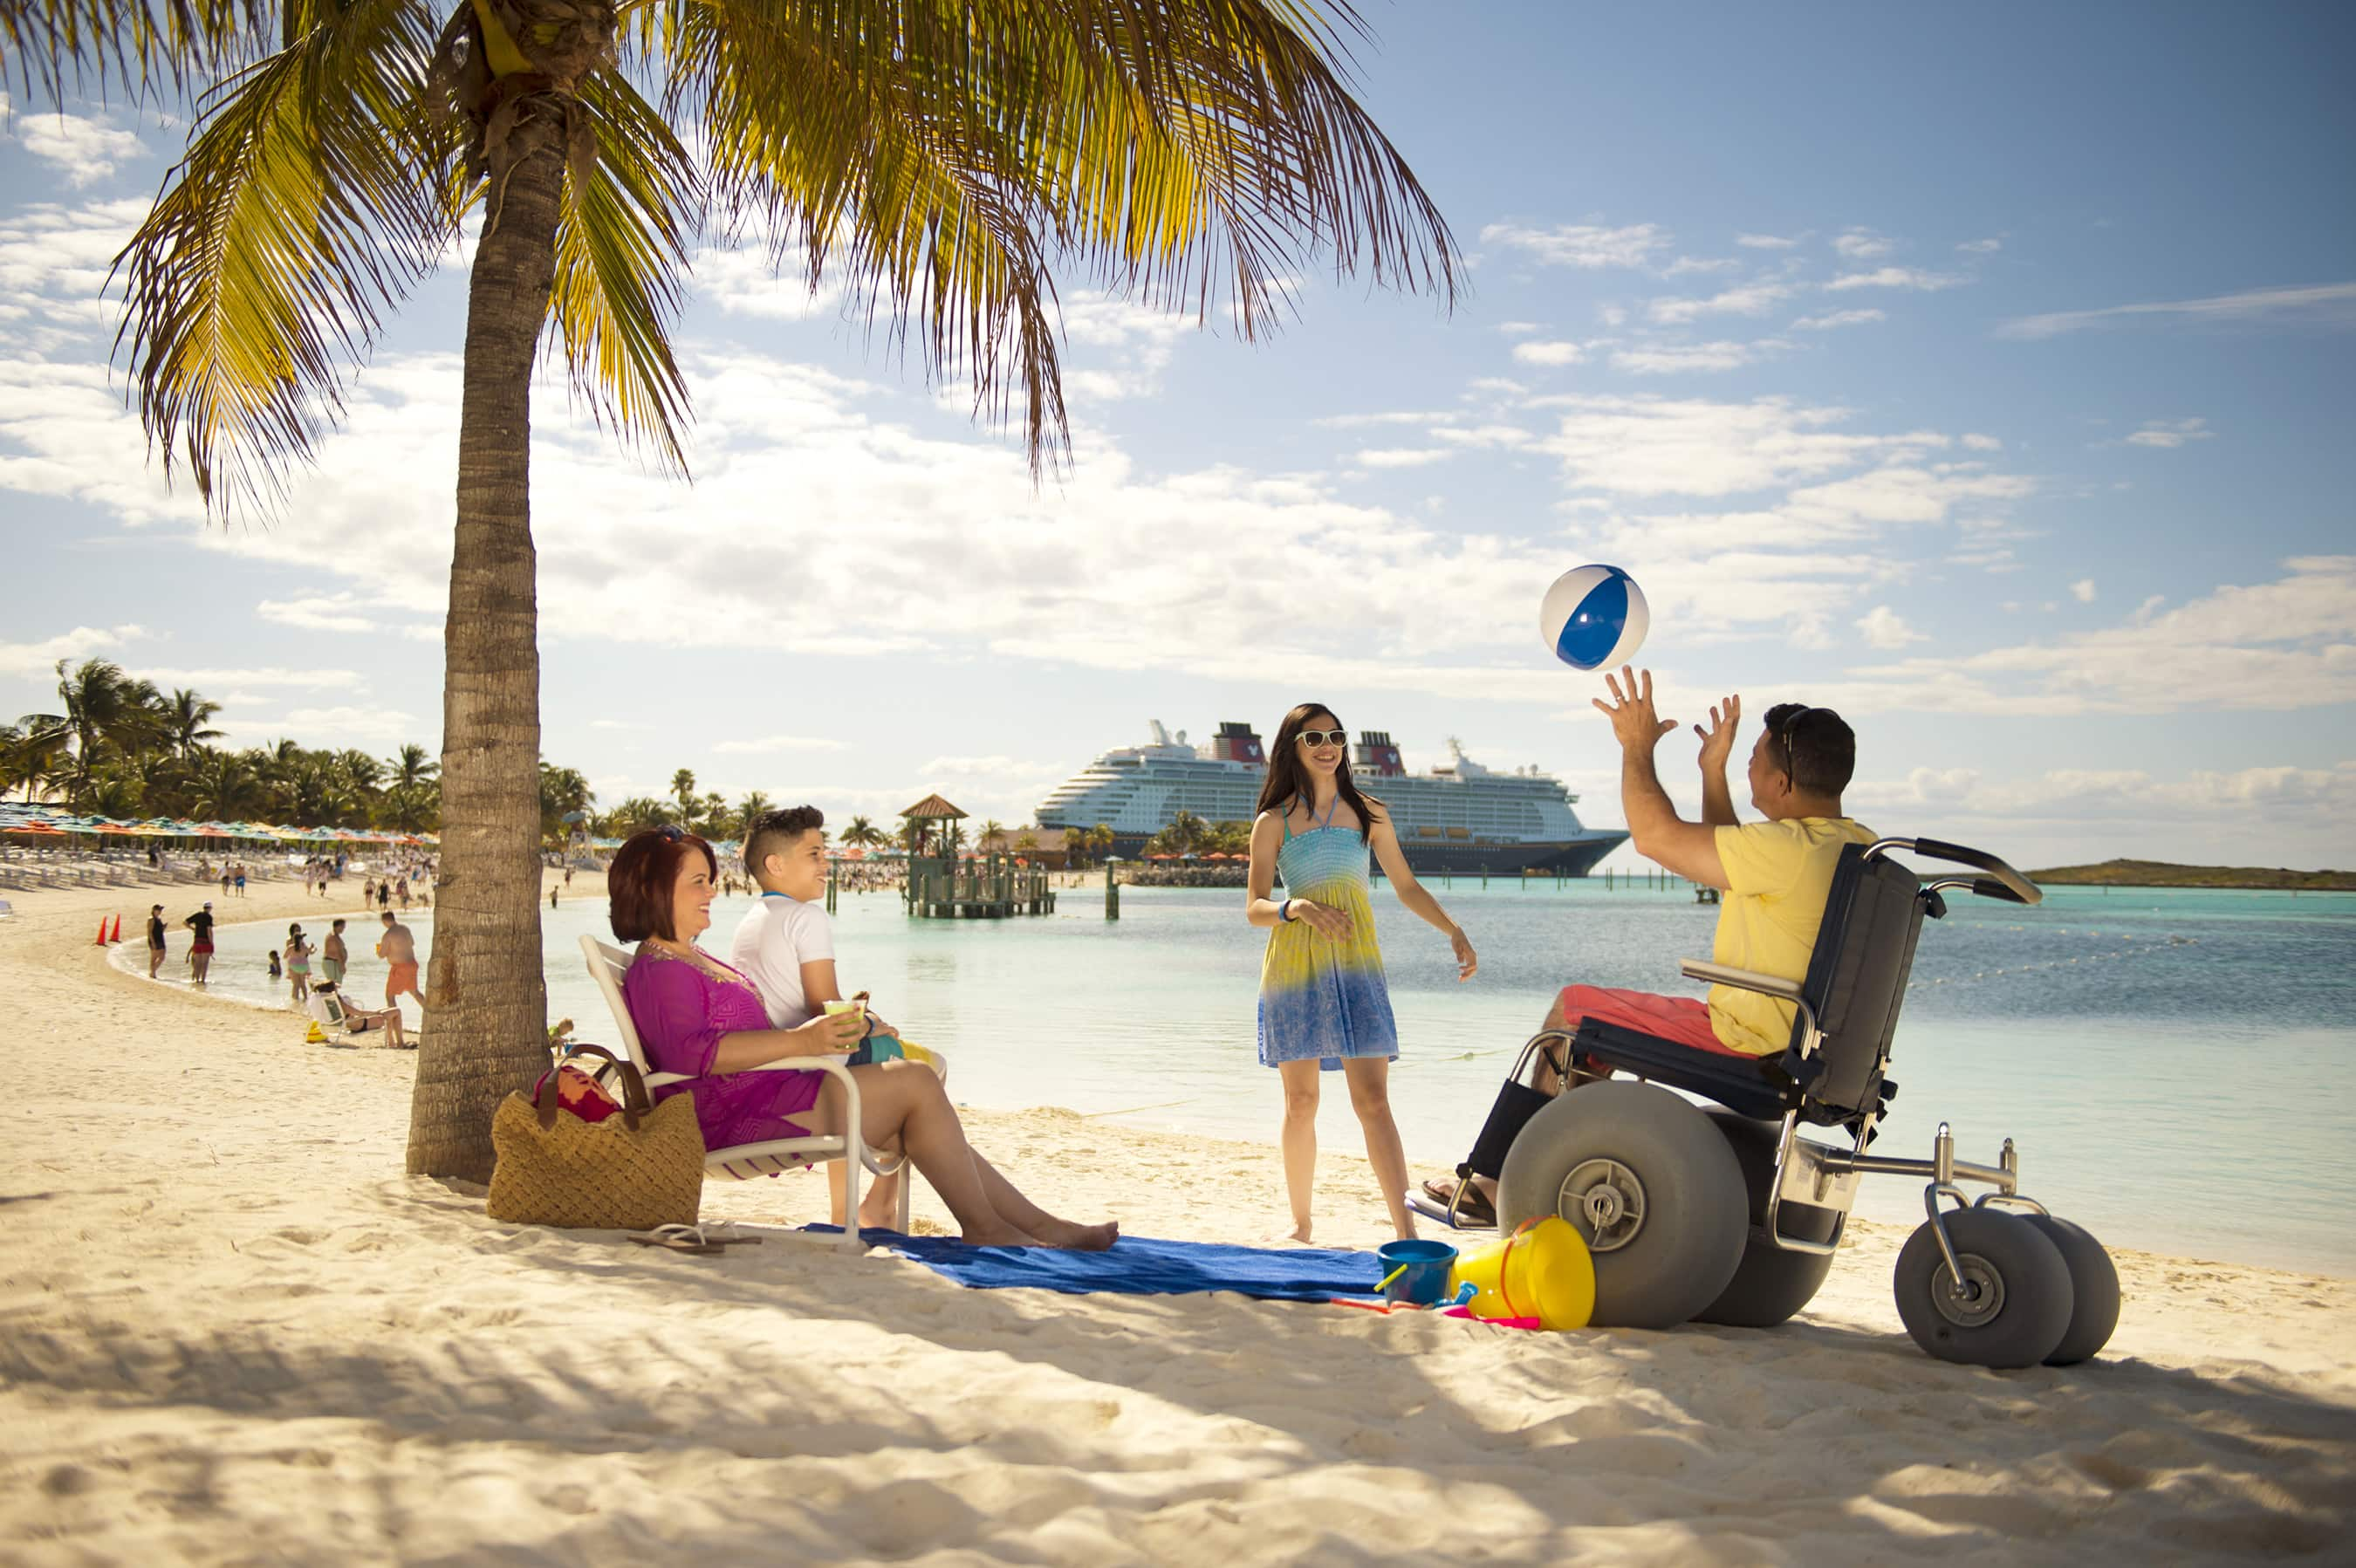 Get to the island early in the day if you want to be sure to nab a beach chair on Castaway Cay